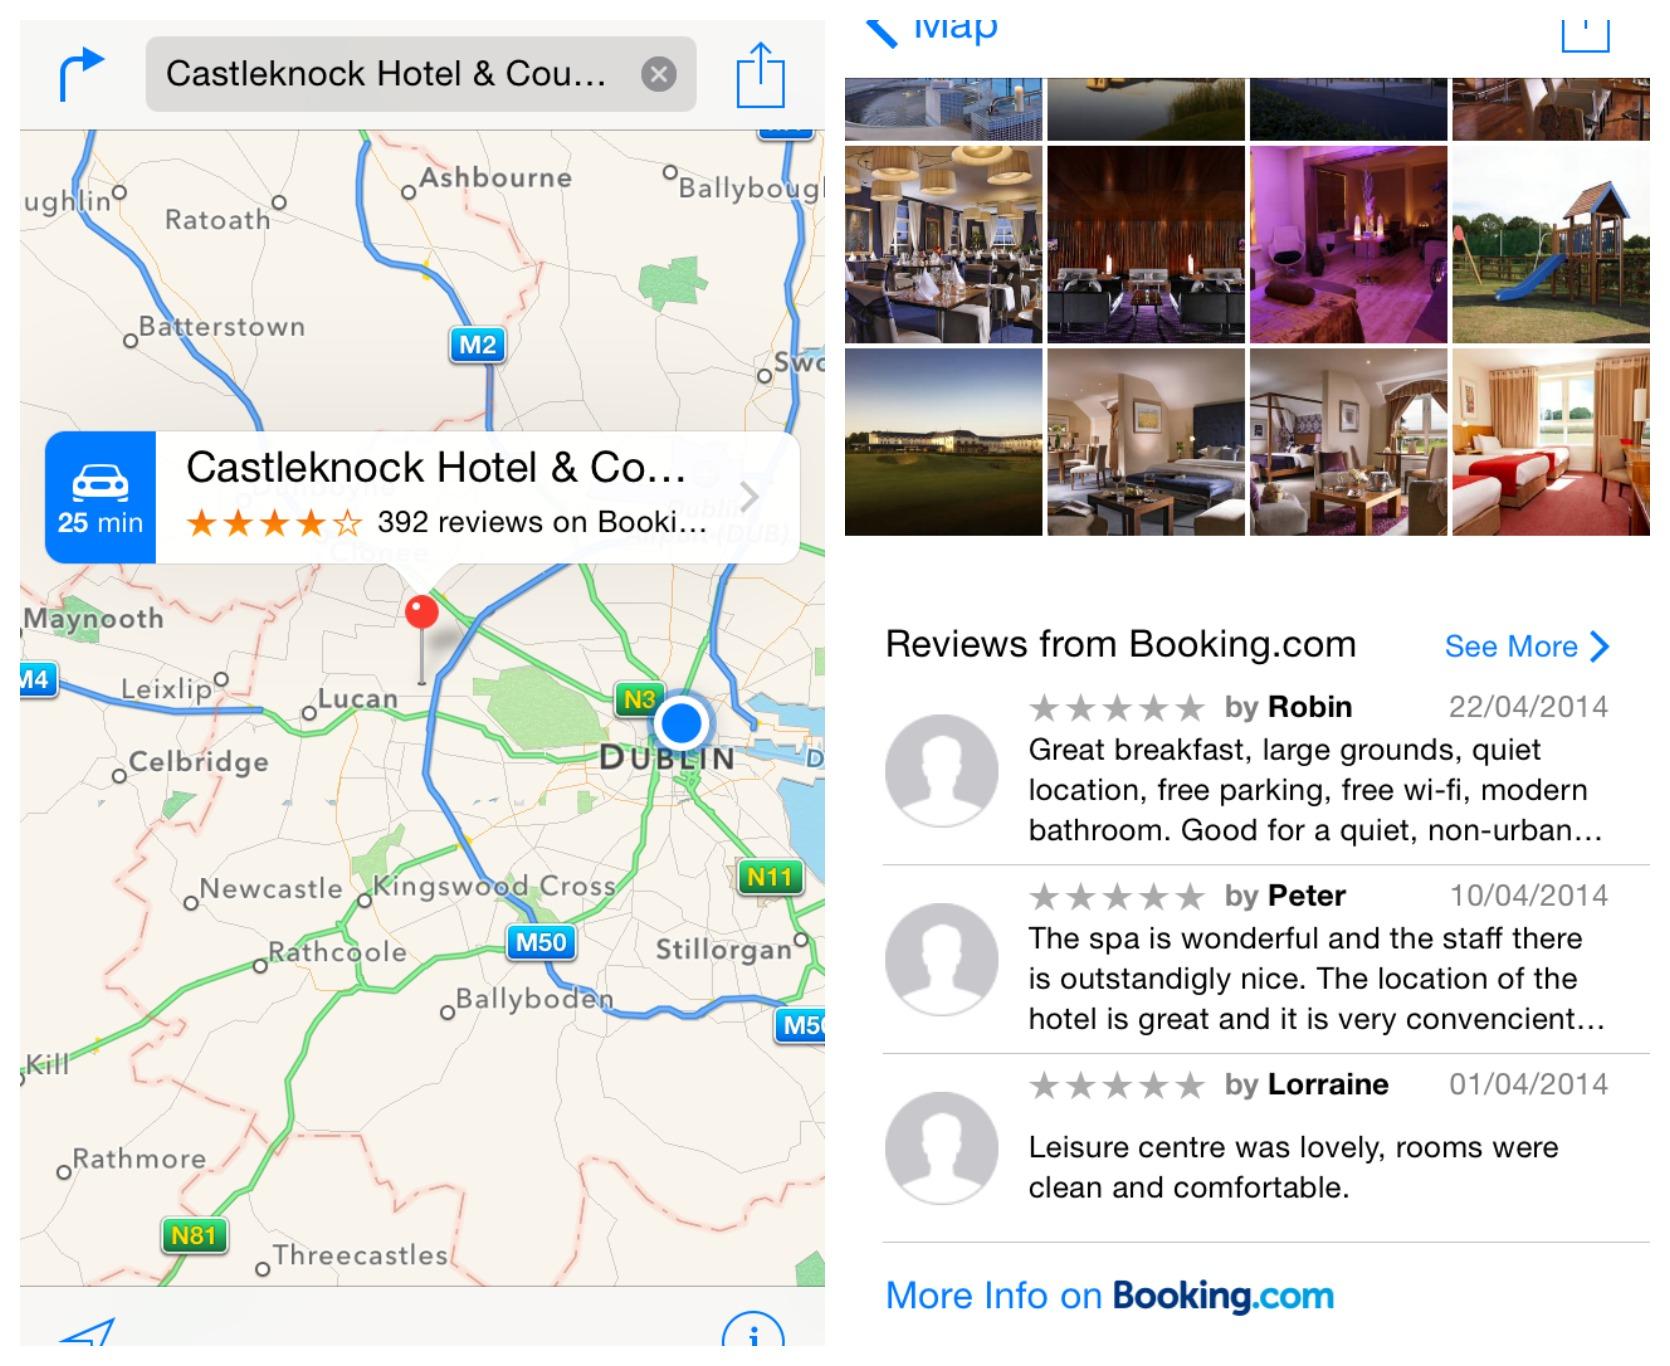 apple maps adds reviews  bookingcom  tripadvisor